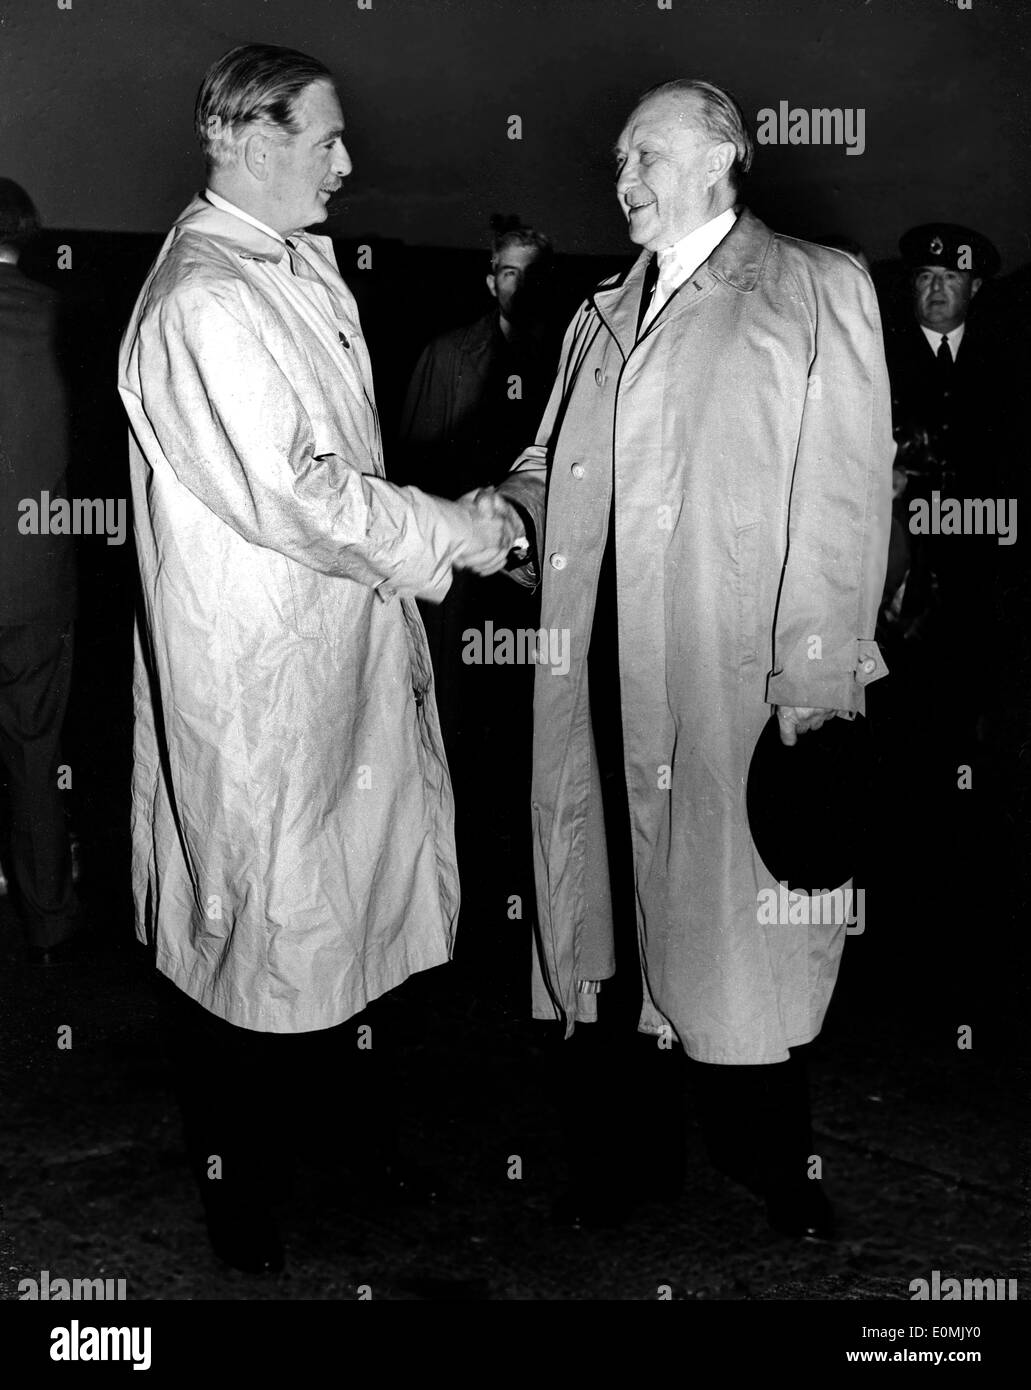 Dr. Konrad Adenauer visits with Anthony Eden - Stock Image